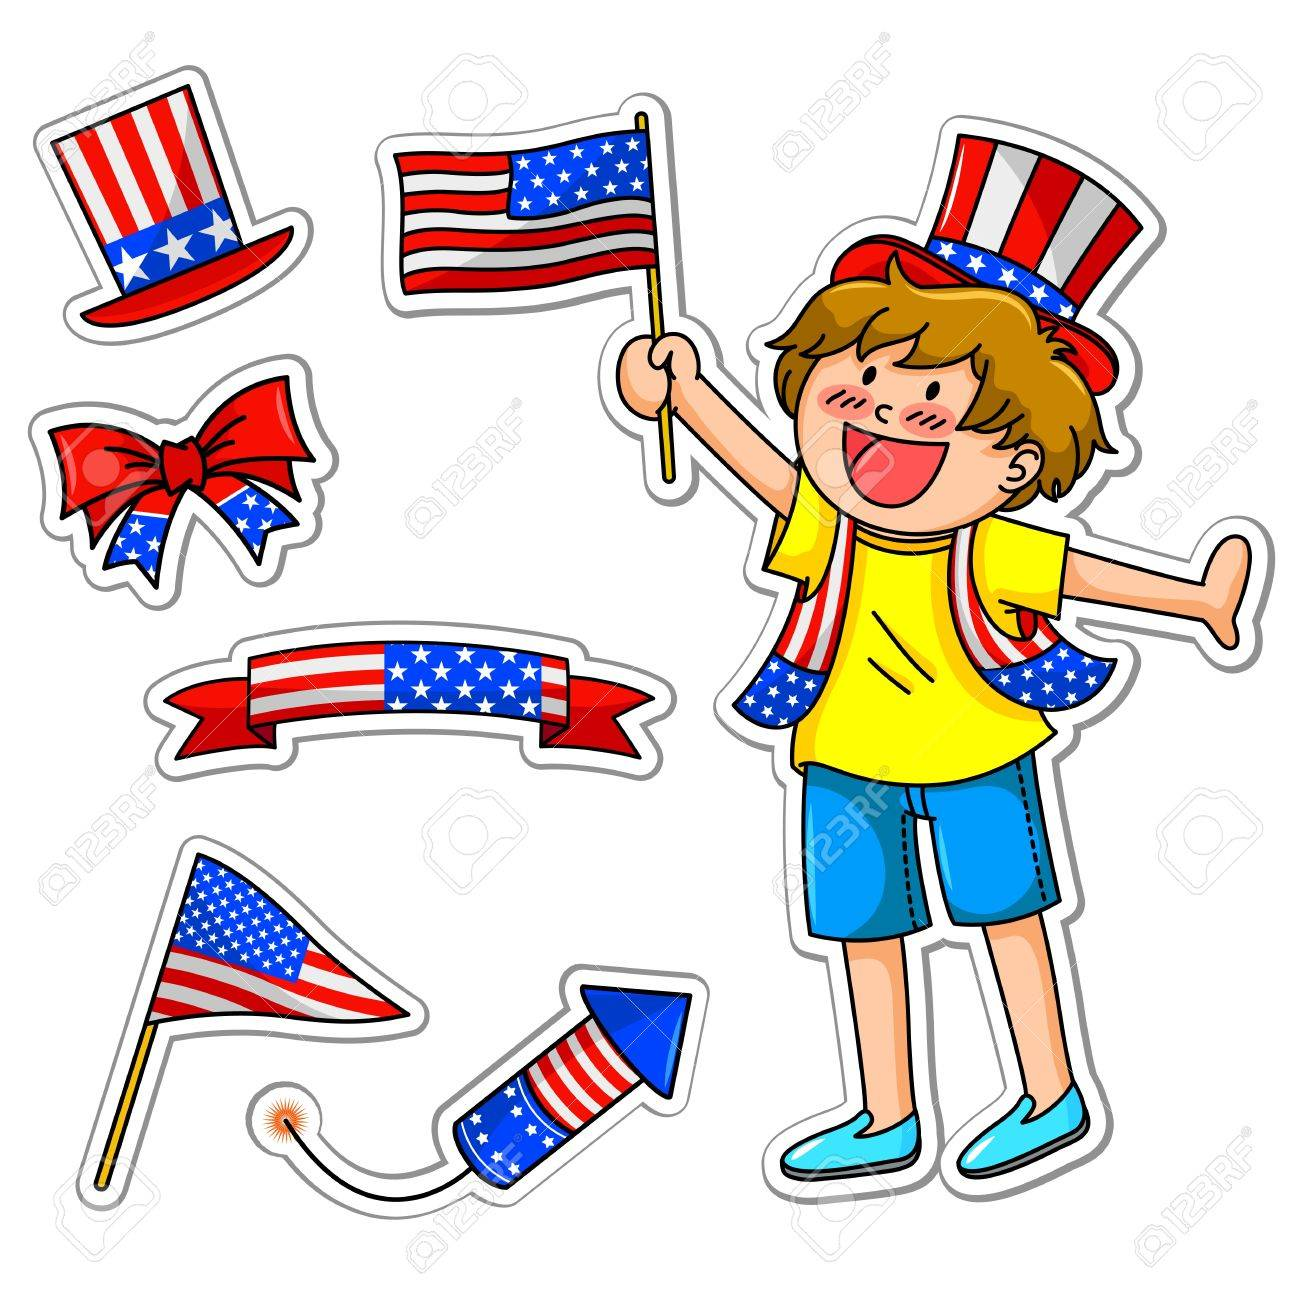 boy celebrating 4th of july, plus matching icons Stock Vector - 16511022